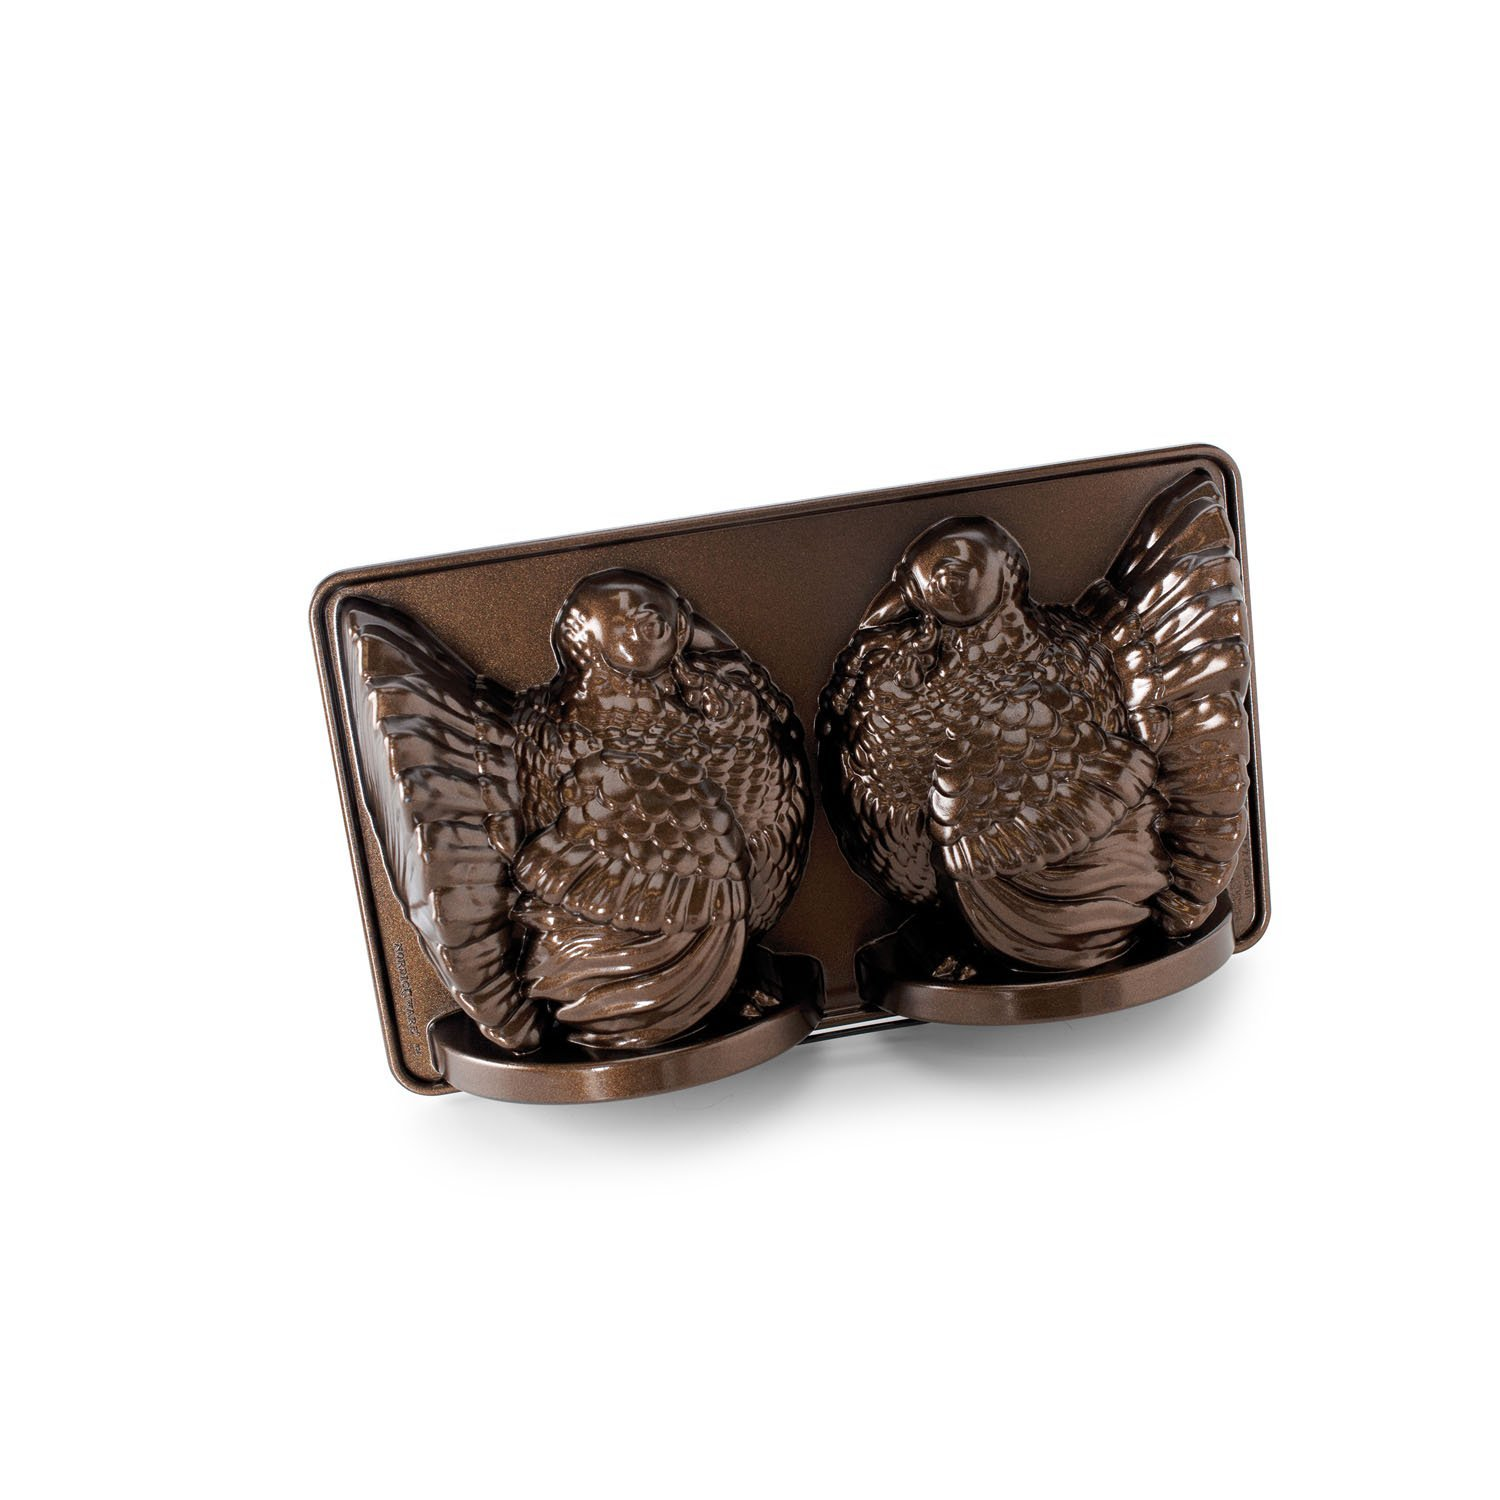 88448 Haunted Skull Pan, Bronze Gray Nordic Haunted right capacity the into Ware leaves fine 88448 Skull Cakelet 9 baked details cakes Pan cup By Nordic Ware Ship from US